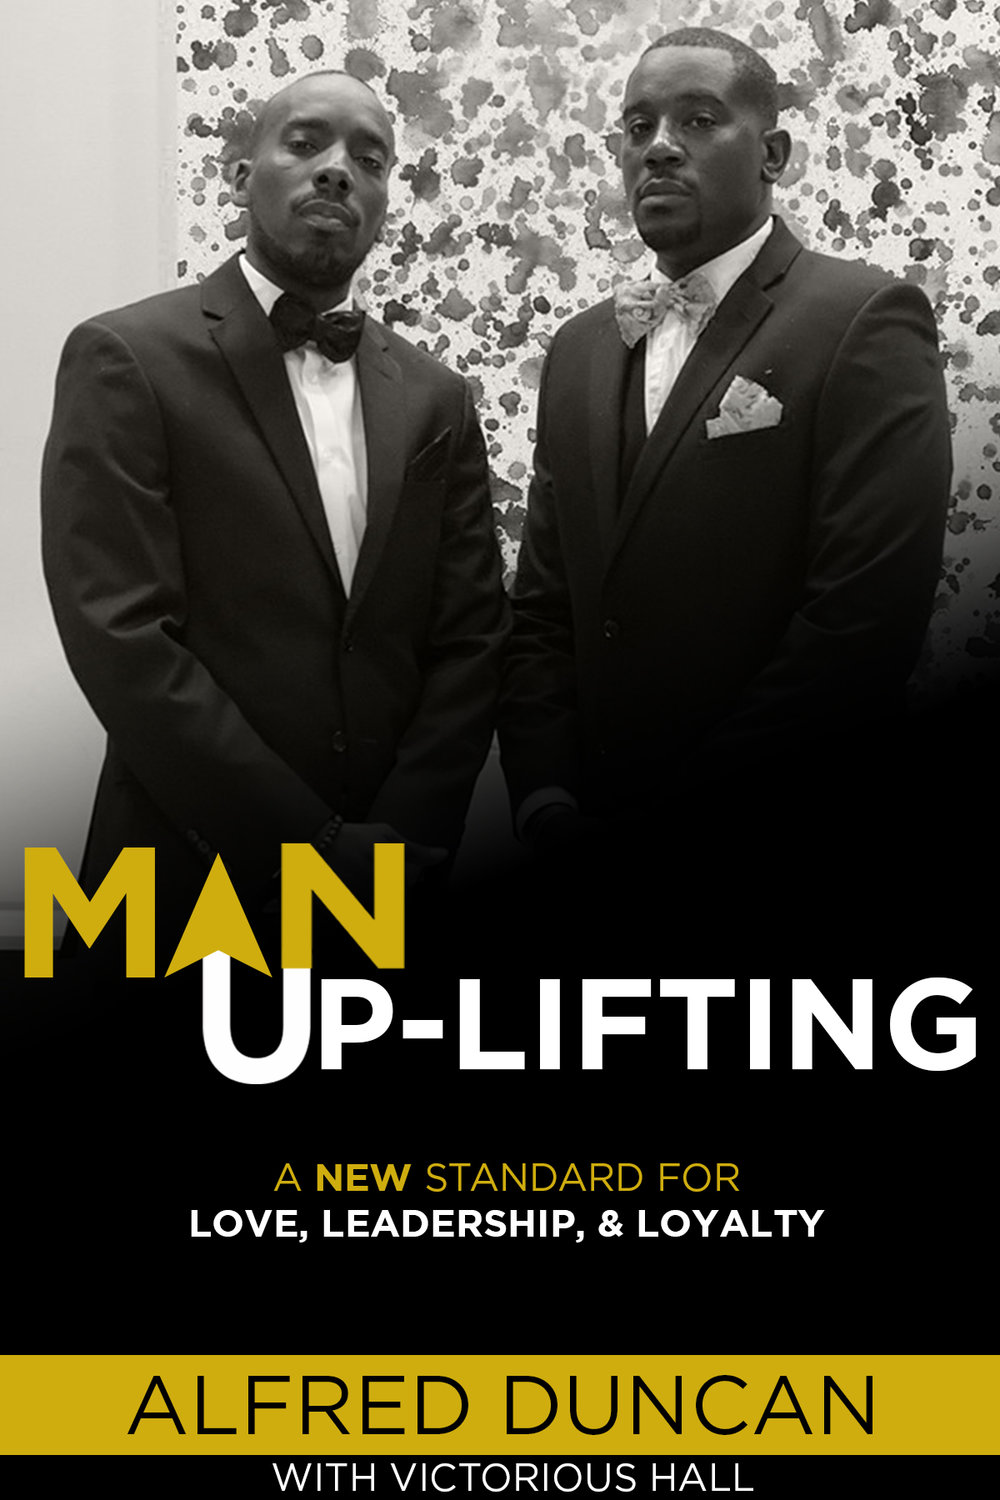 """Man UP-Lifting by Alfred Duncan with Victorious Hall confronts the misconceptions about men, relationships and family. Alfred and Victorious challenge stereotypes and ideas spoon-fed by popular culture, while welcoming you into the minds of black men who have accepted the call to """"man up,"""" be faithful, pursue God, marriage,leadership and loyalty.Man UP-Lifting is motivating and thought-provoking and provides a new perspective for today's generation."""